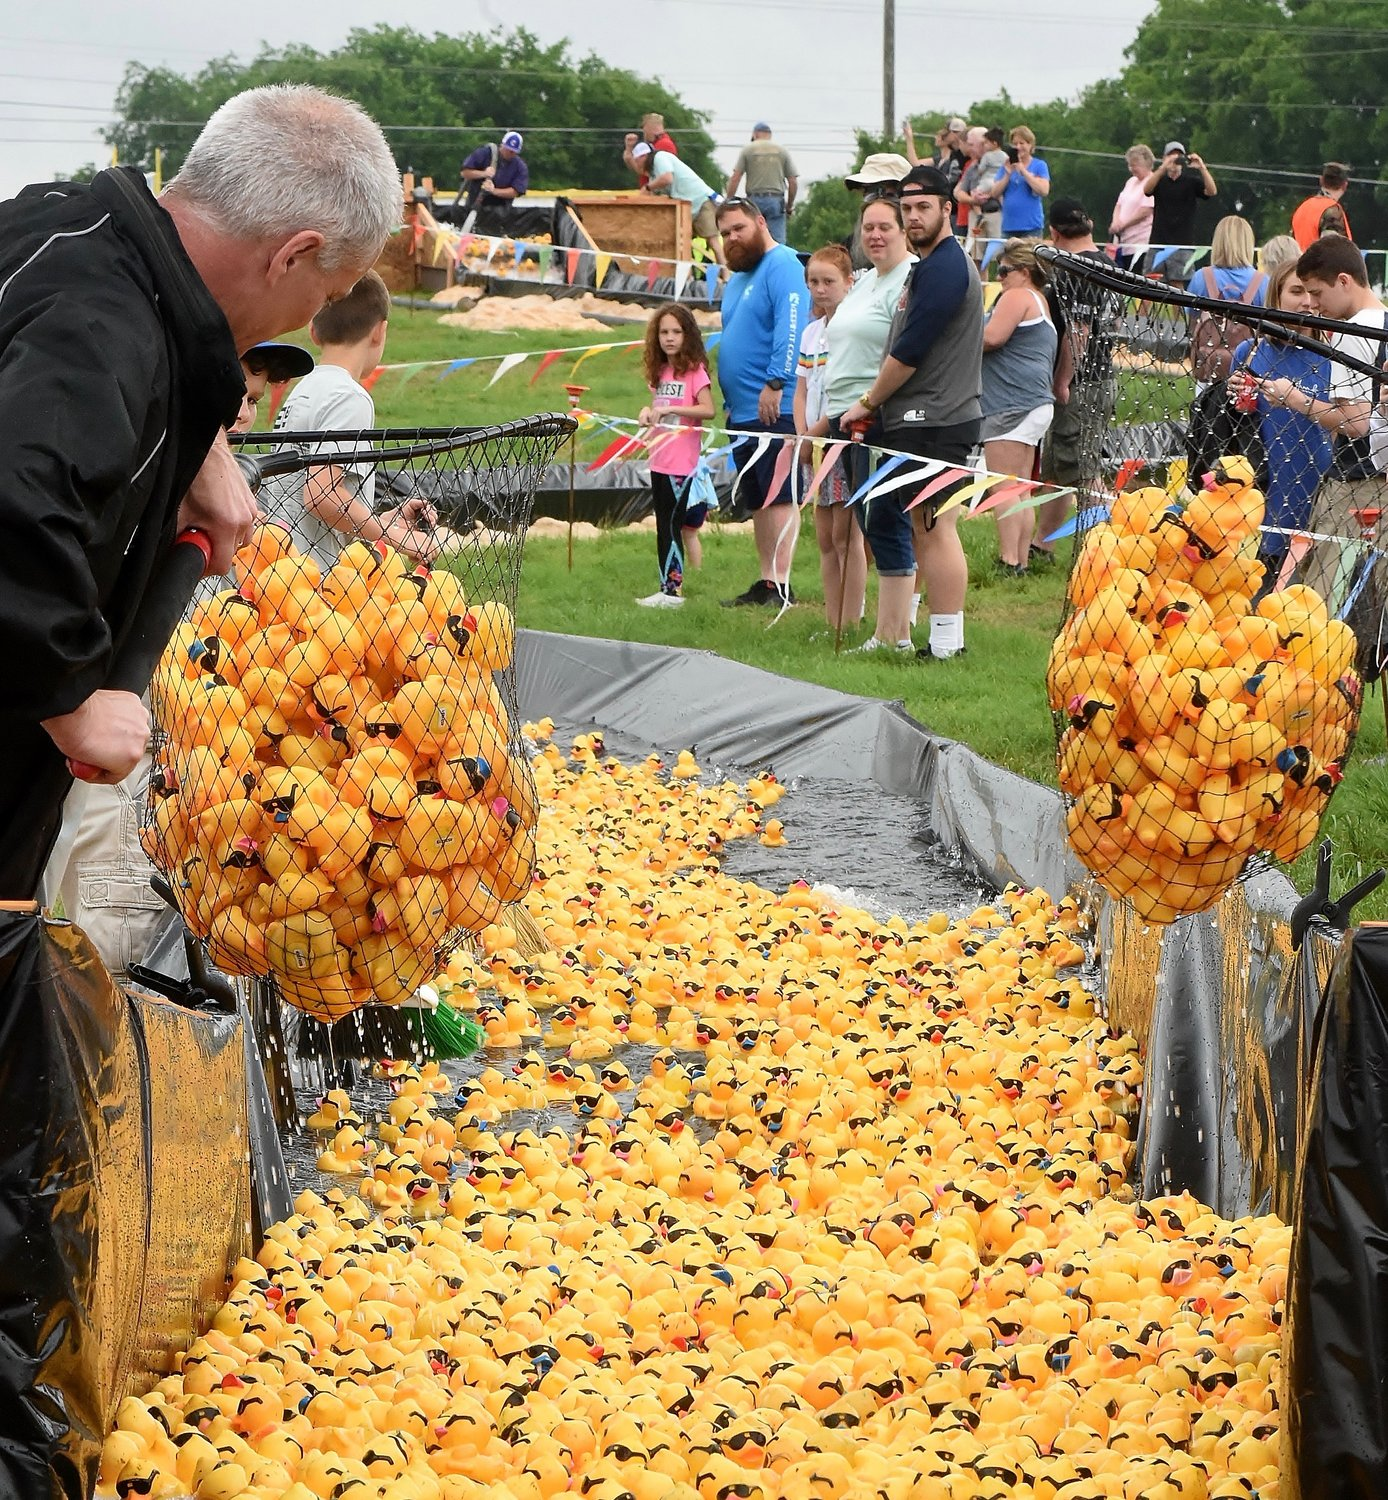 Large nets were used to remove ducks from the gathering pool at the bottom of the race course during Saturday's Duck Derby at Sam Smith Park.